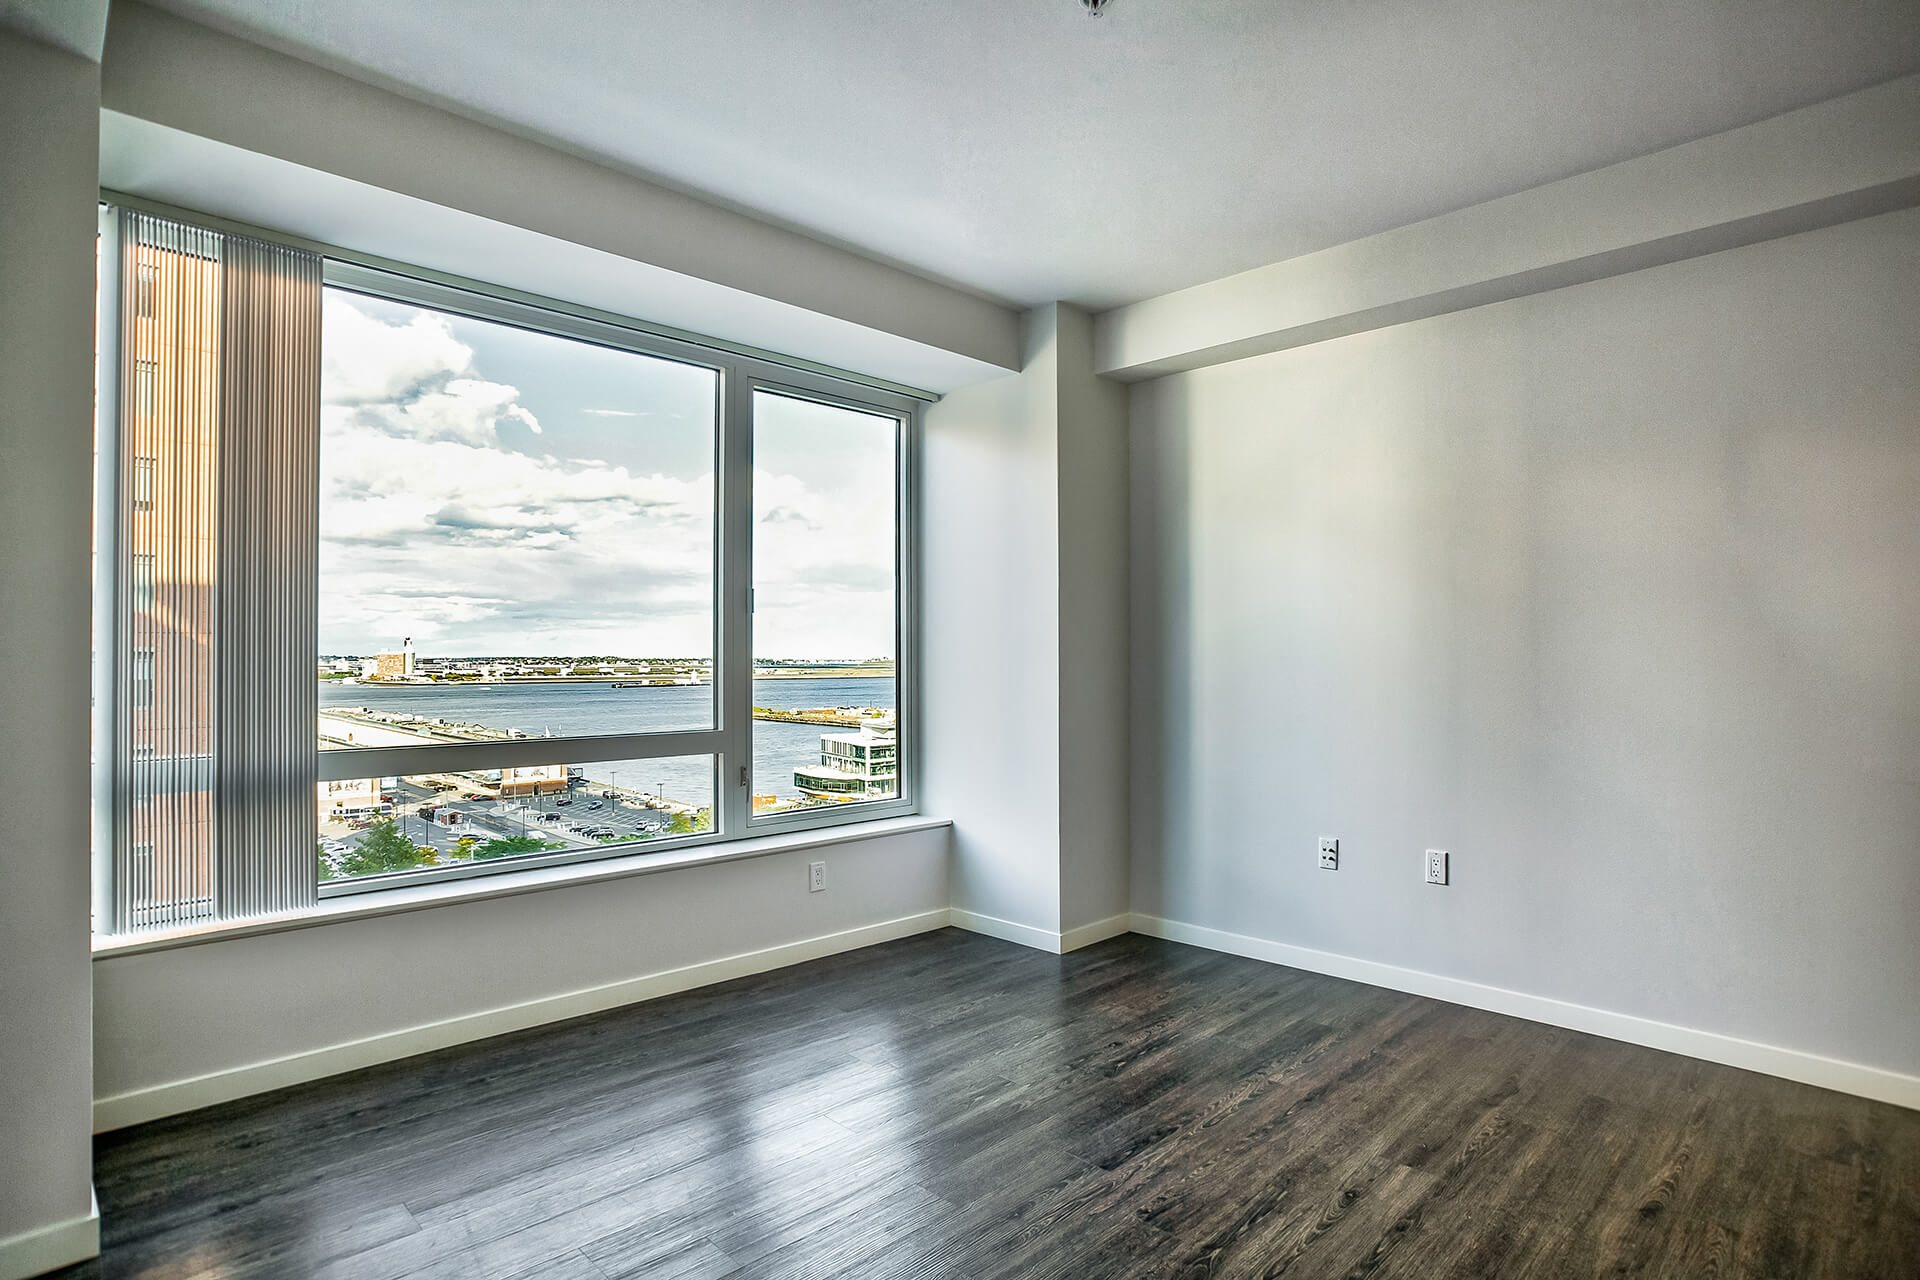 Hardwood flooring at Waterside Place by Windsor, 505 Congress St, Boston